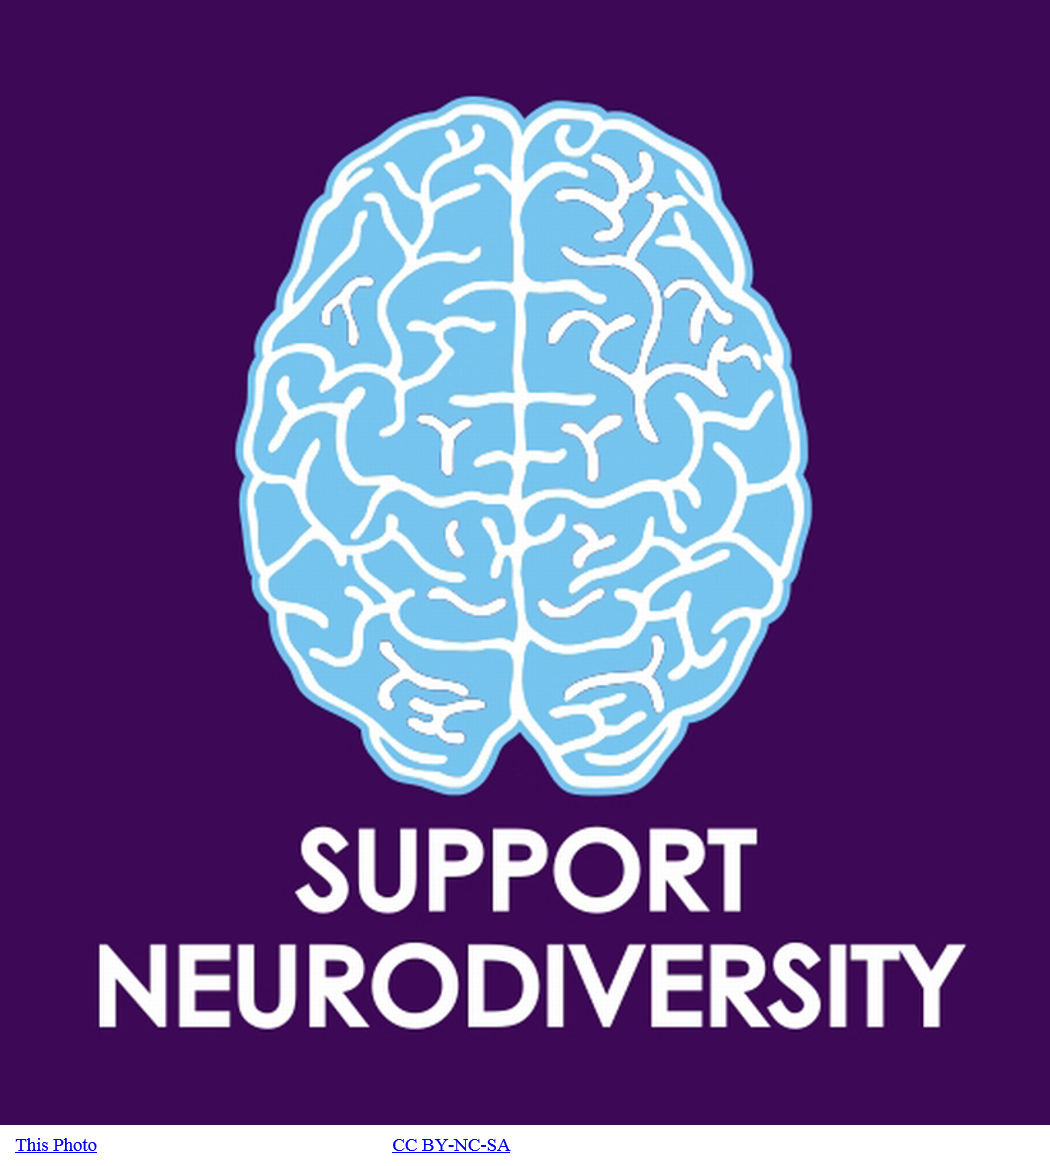 Graphic of a brain with the words ''Support Neurodiversity'' under it